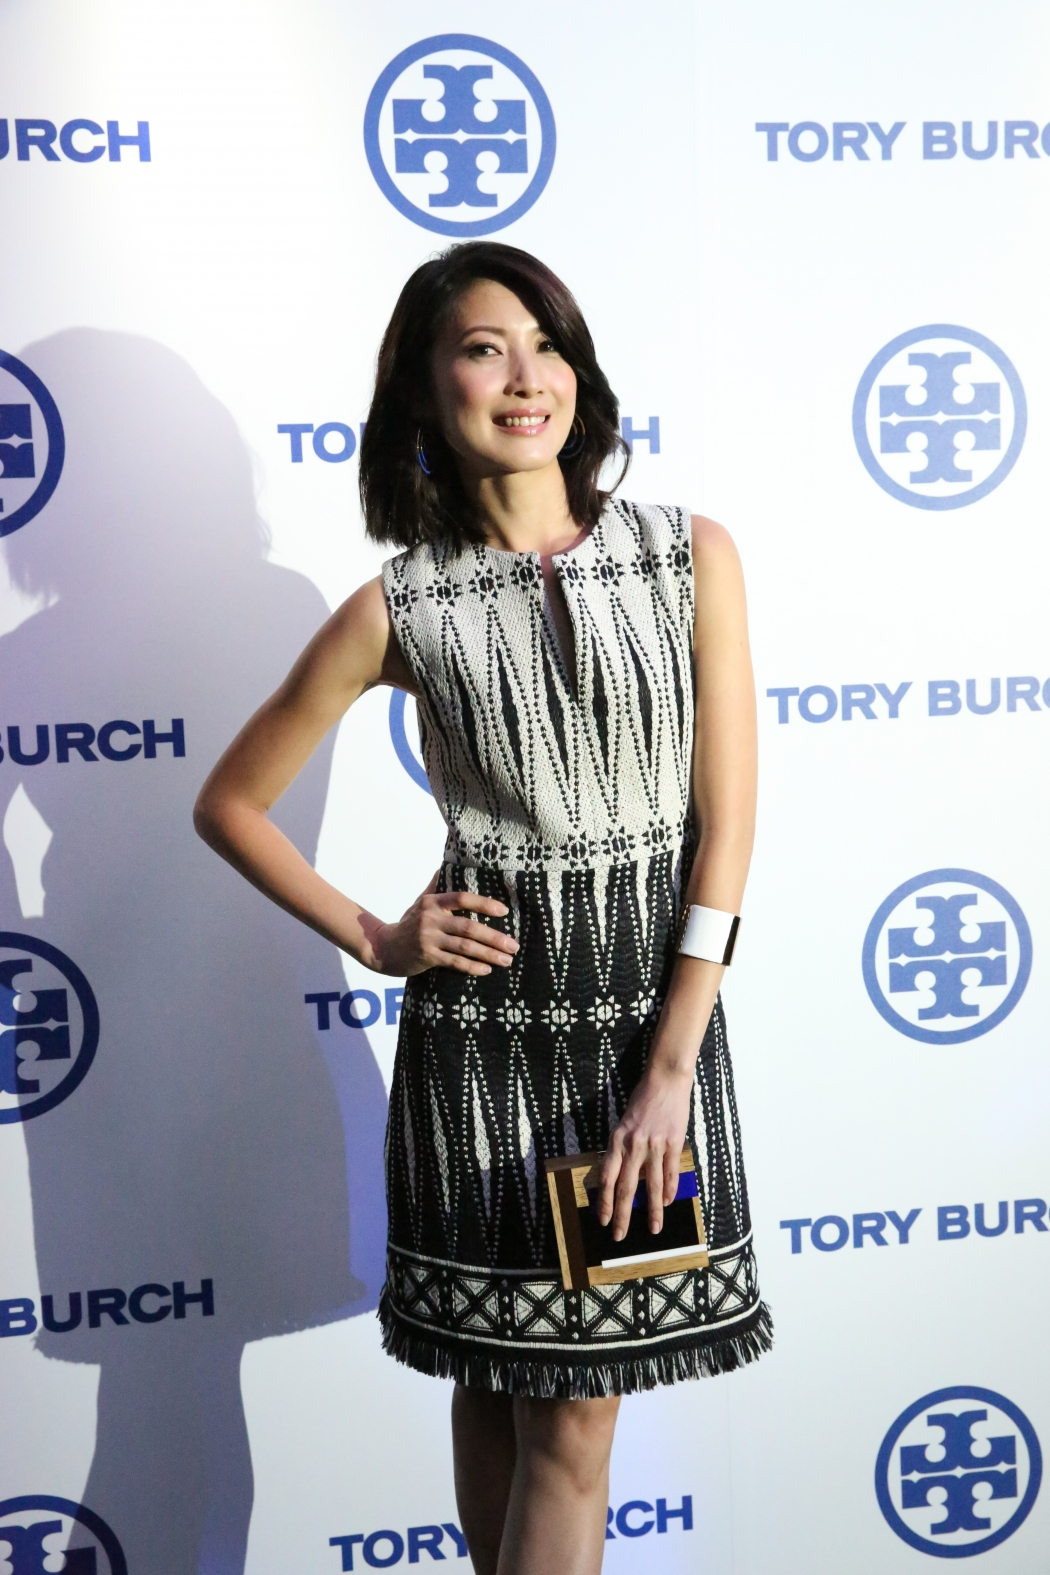 The tory getaway boutique j code a blog by jeanette aw for Boutique getaways